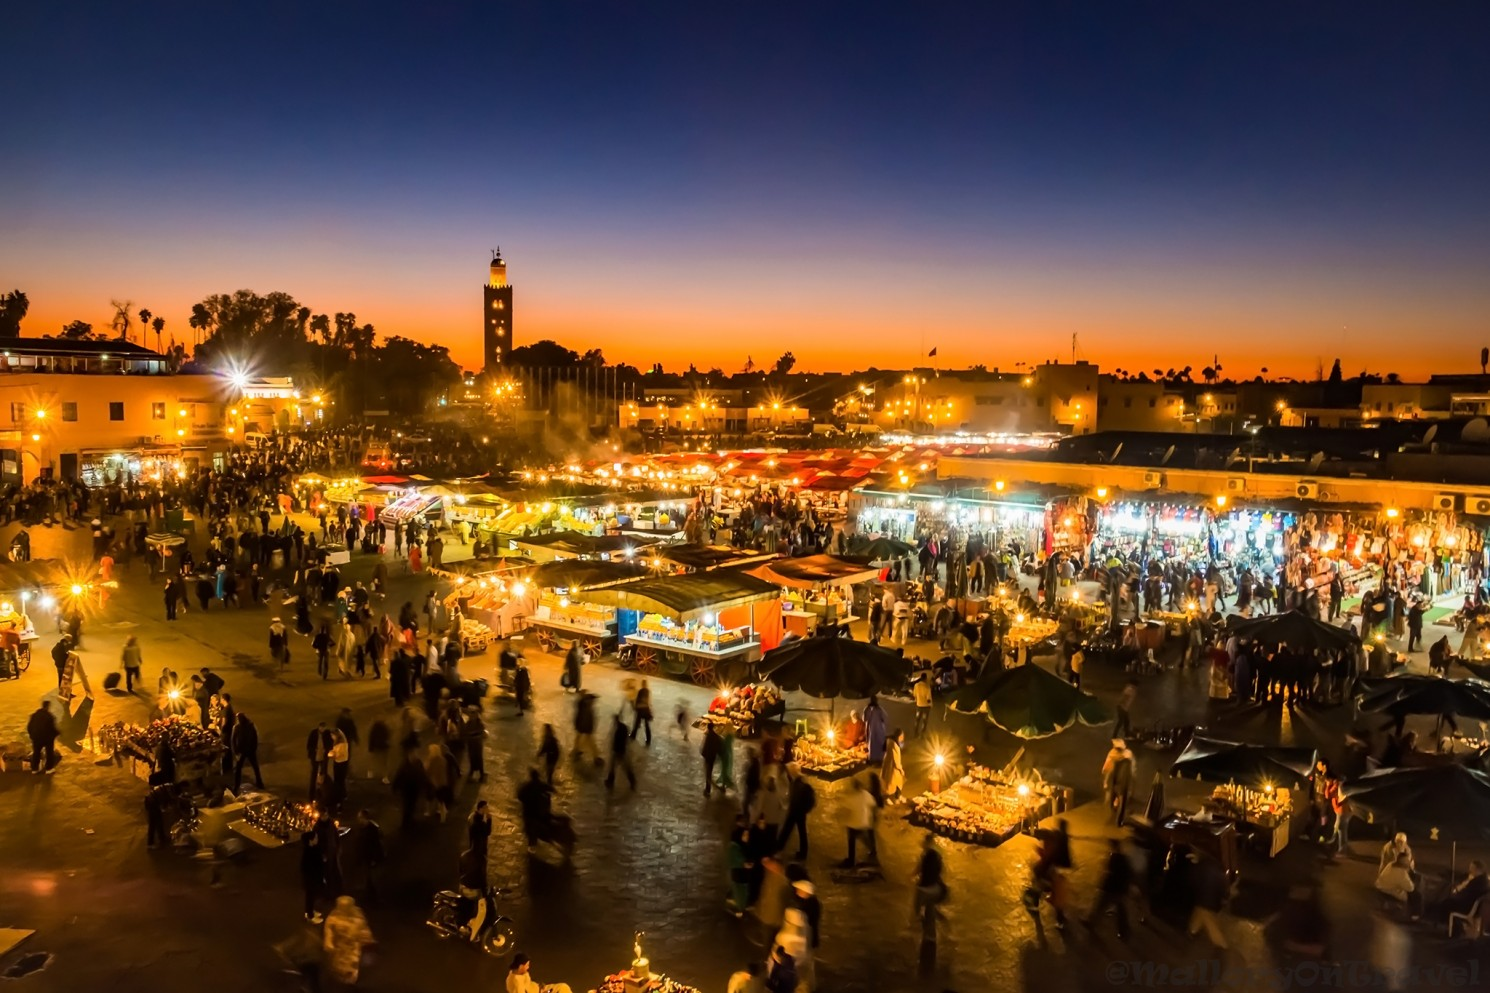 Djemaa-el-Fna at sunset in the Medina of Marrakech, Morocco in North Africa on Mallory on Travel adventure travel, photography, travel Iain_Mallory_Mor16240